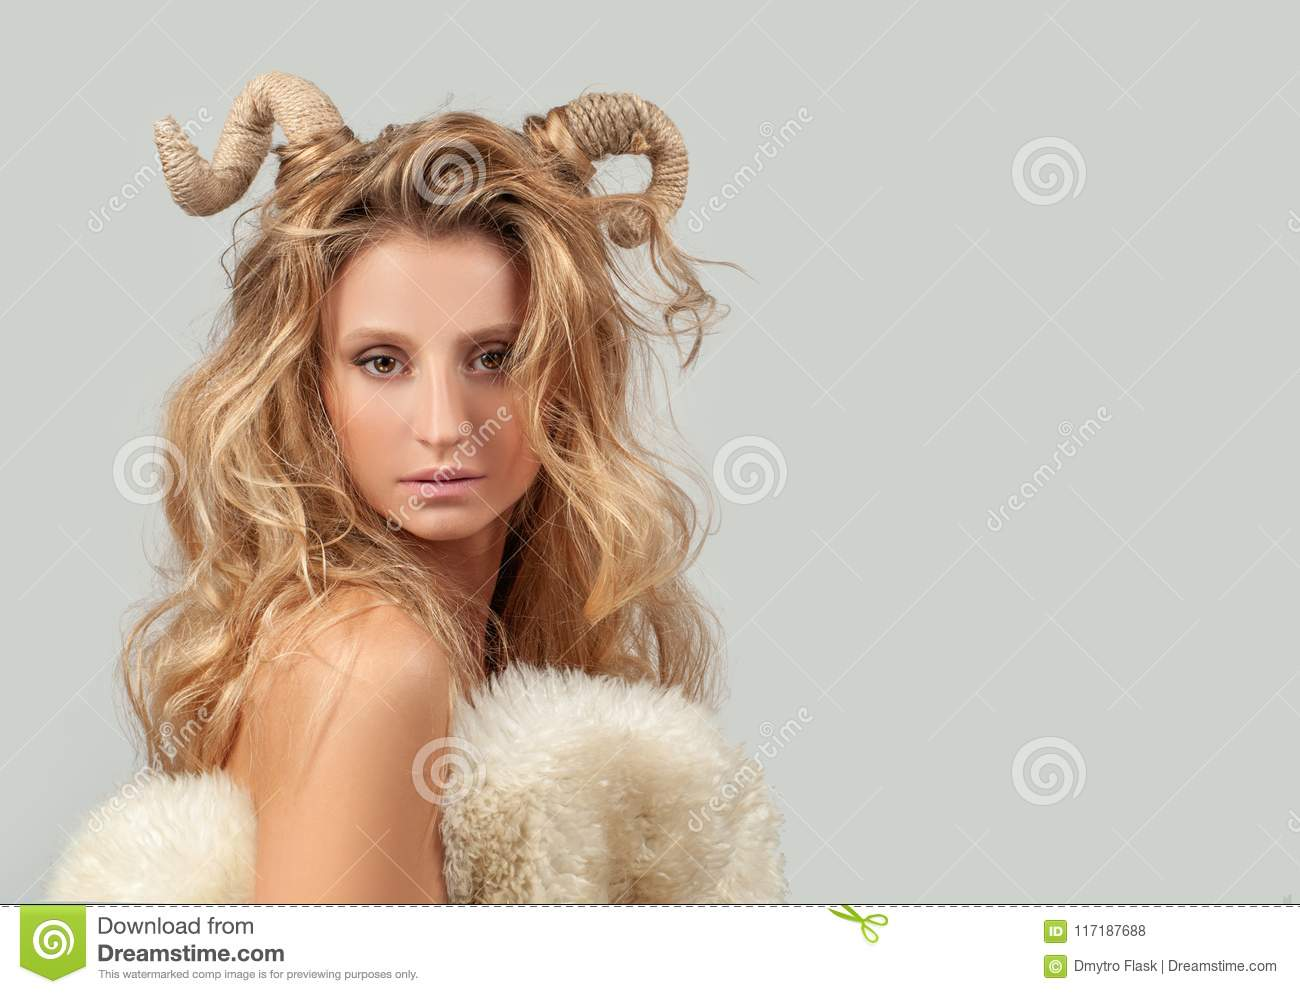 Astrology Woman Aries Zodiac Sign Stock Photo Image Of Hairstyle